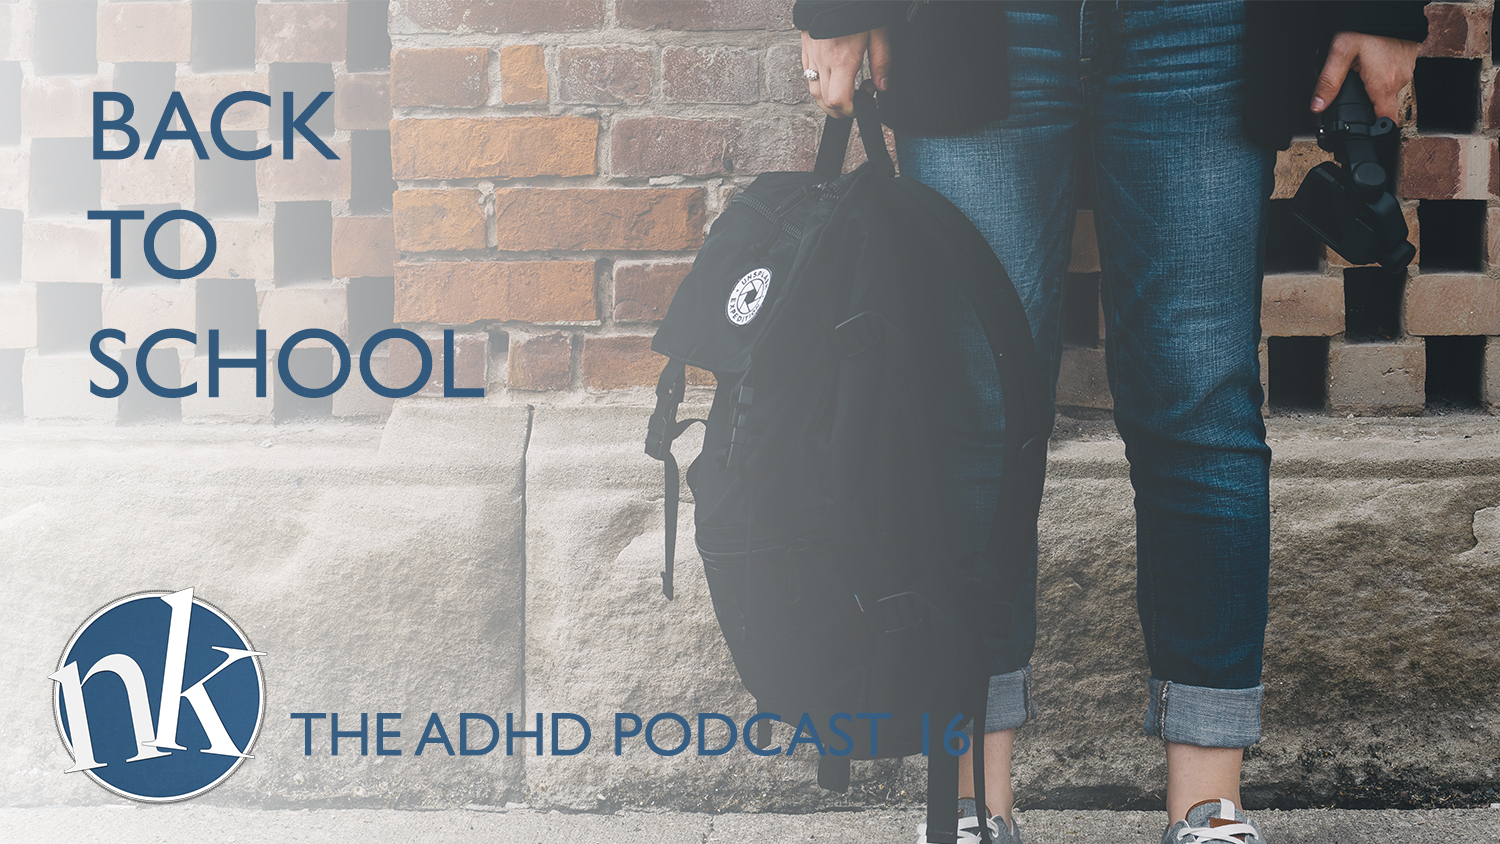 Back to school with ADHD Podcast